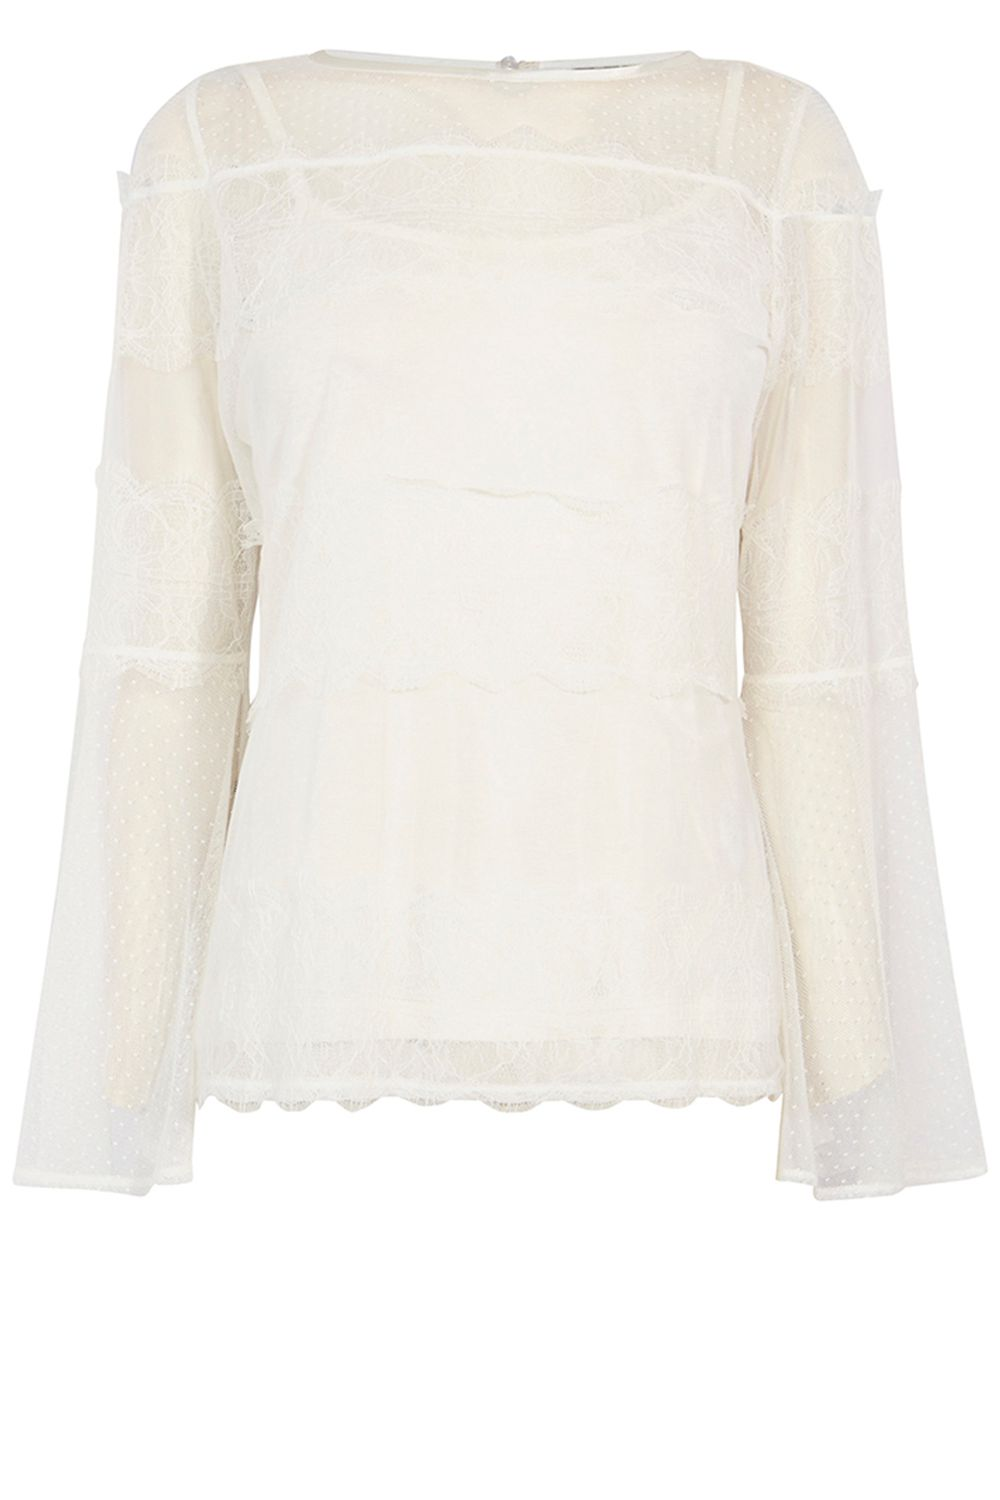 Coast Tara Lace Mesh Top, White